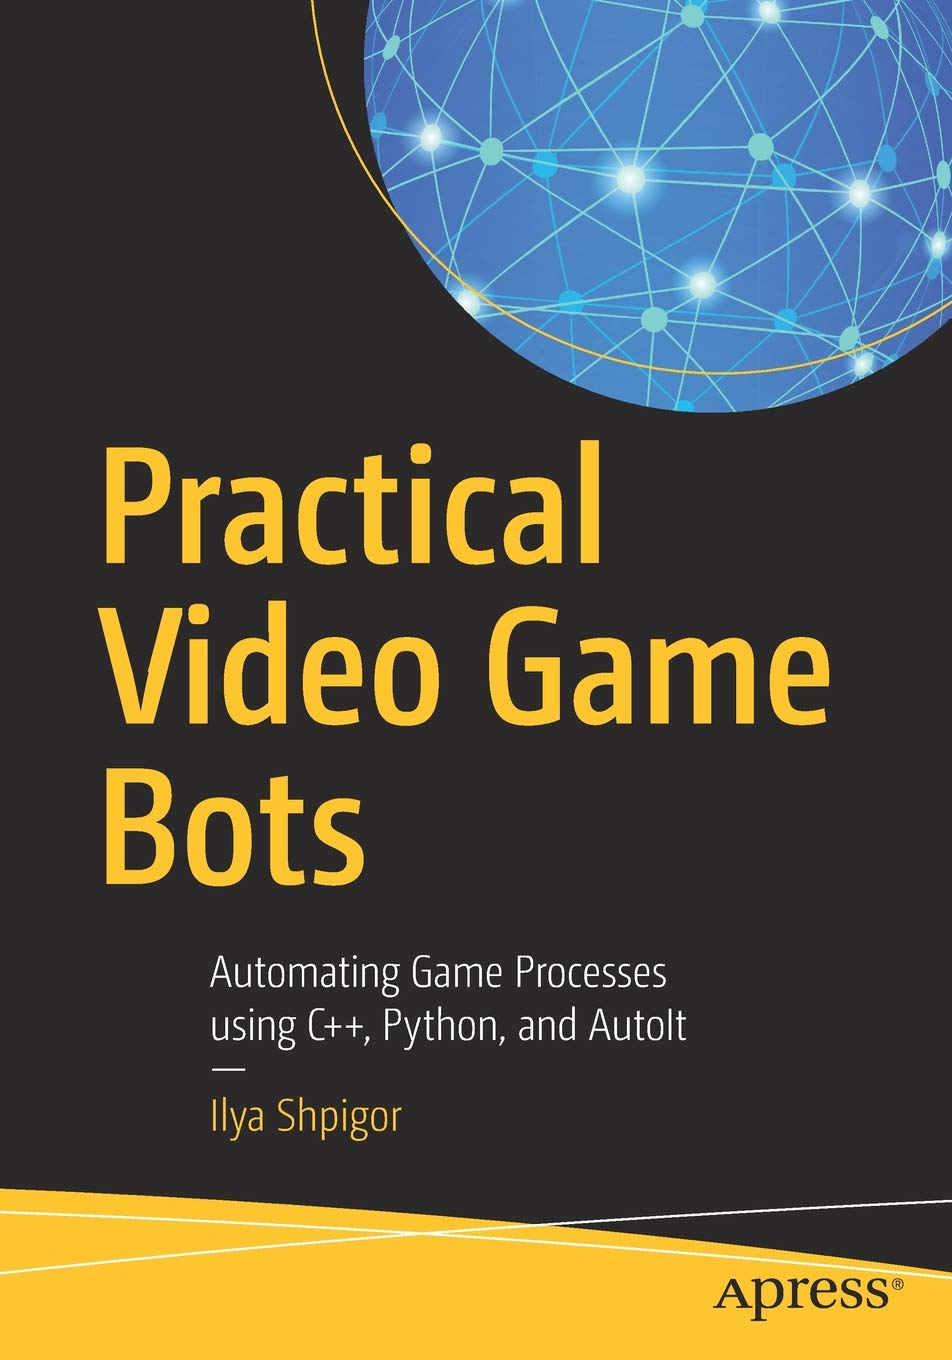 Practical Video Game Bots: Automating Game Processes using C